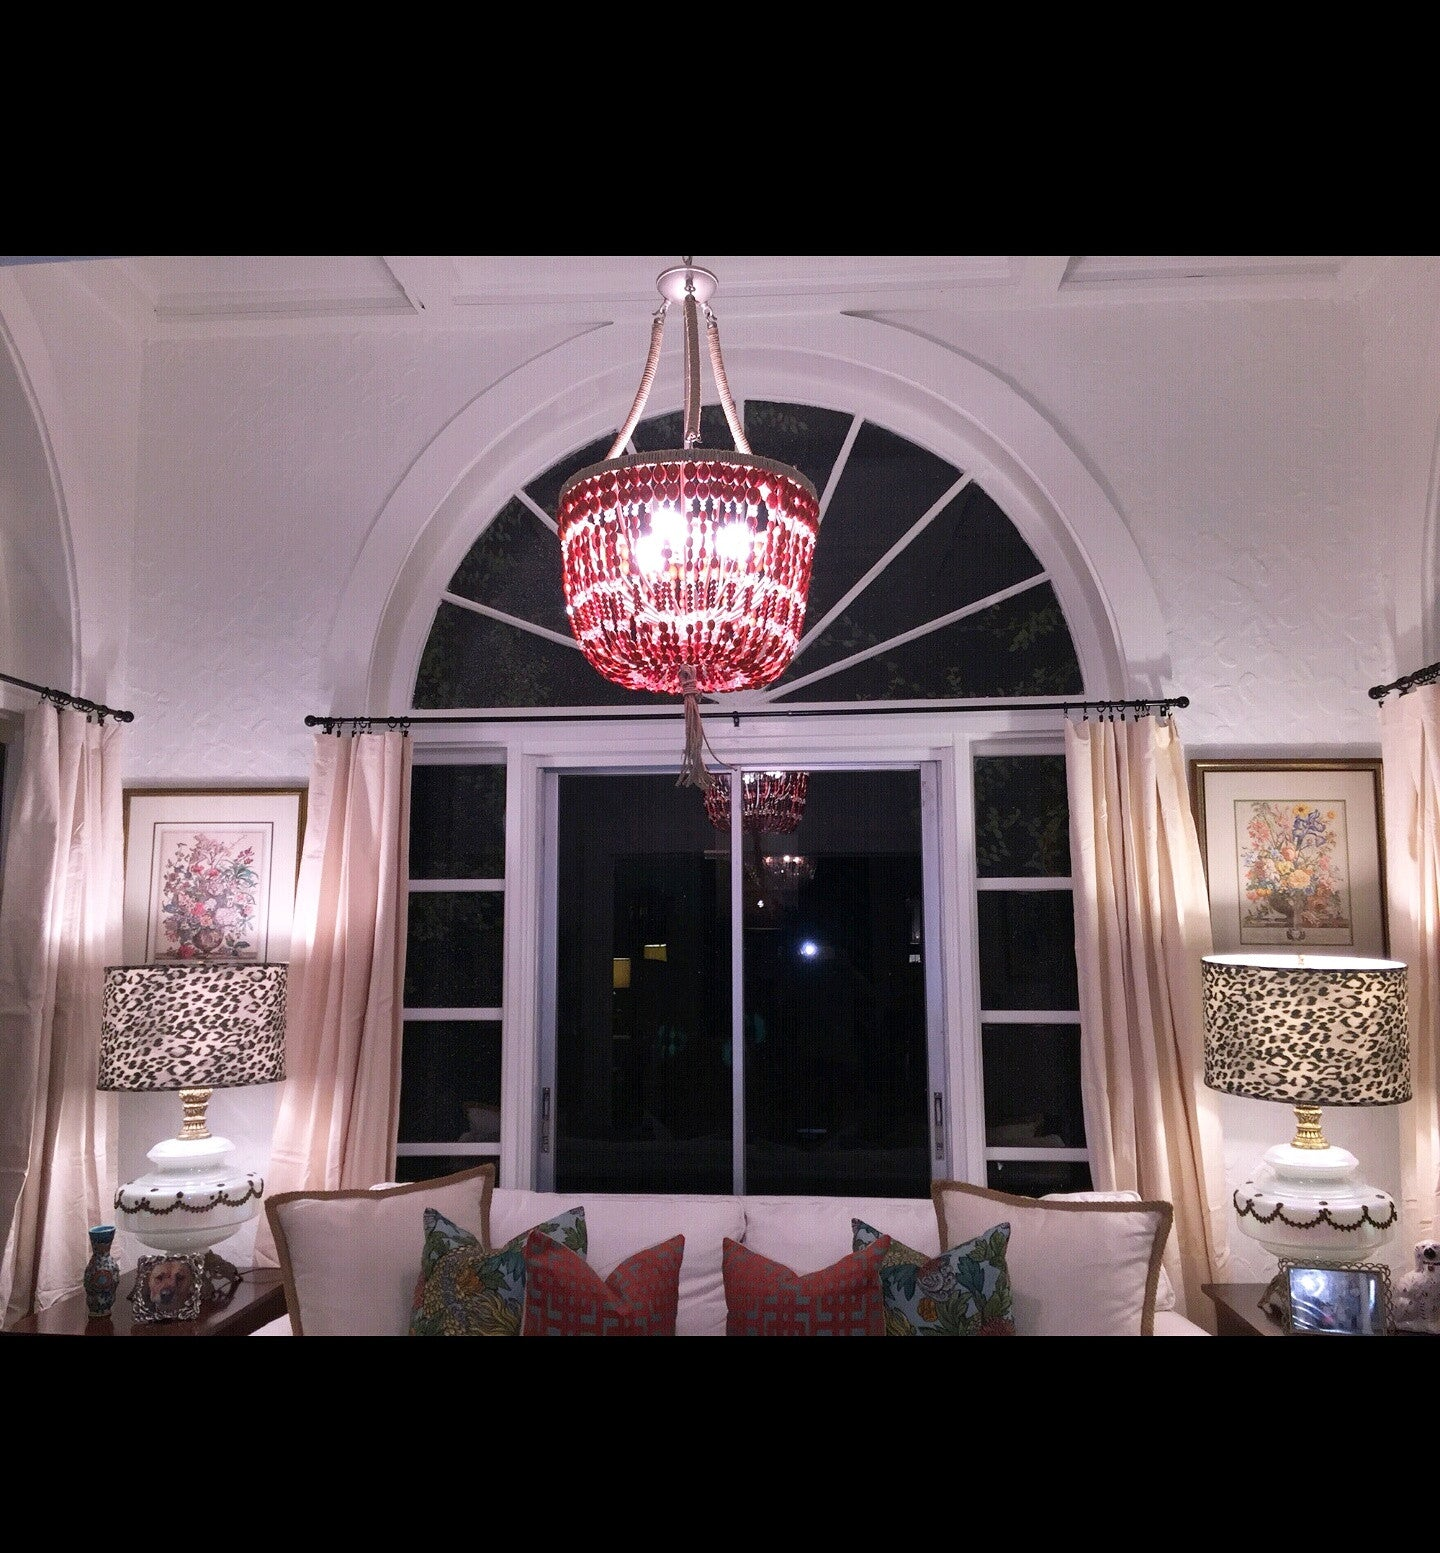 Zoran 2 light white turquoise open chandelier au courant interiors erica coral stone open chandelier au courant interiors aloadofball Image collections